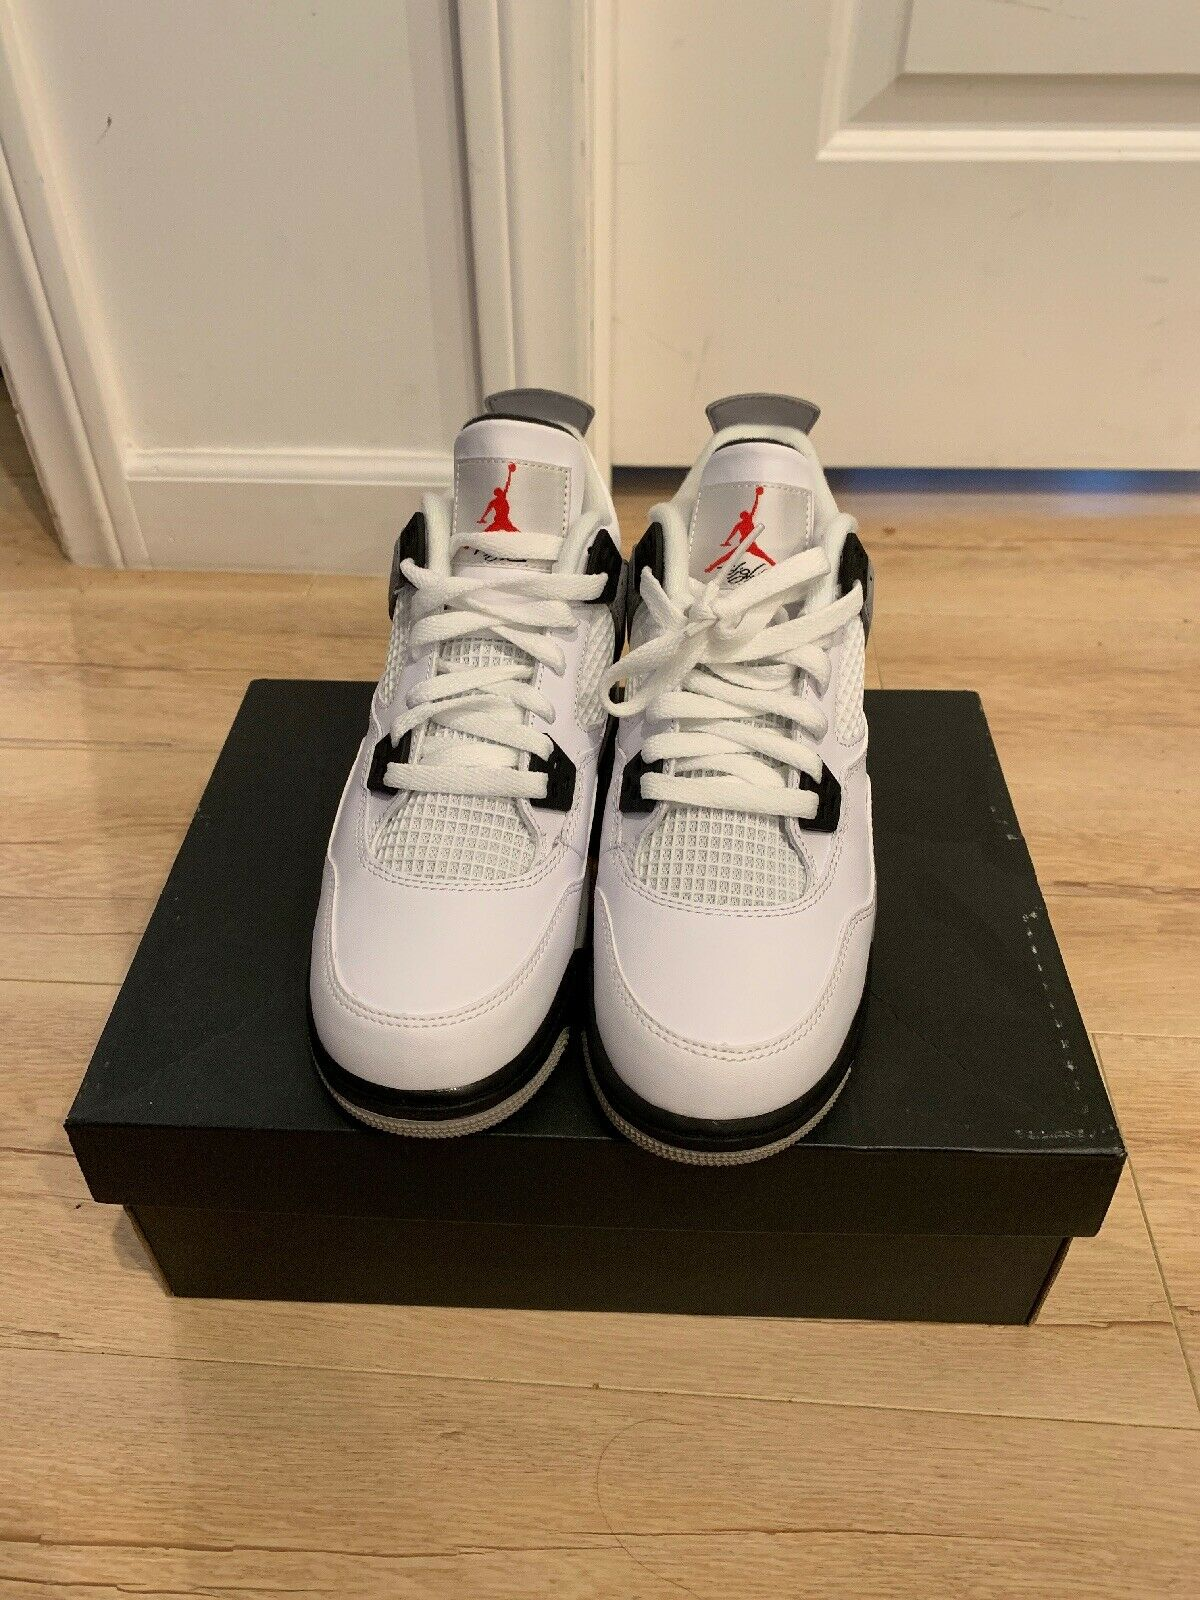 Air Jordan Retro 4 White Cement Size 6